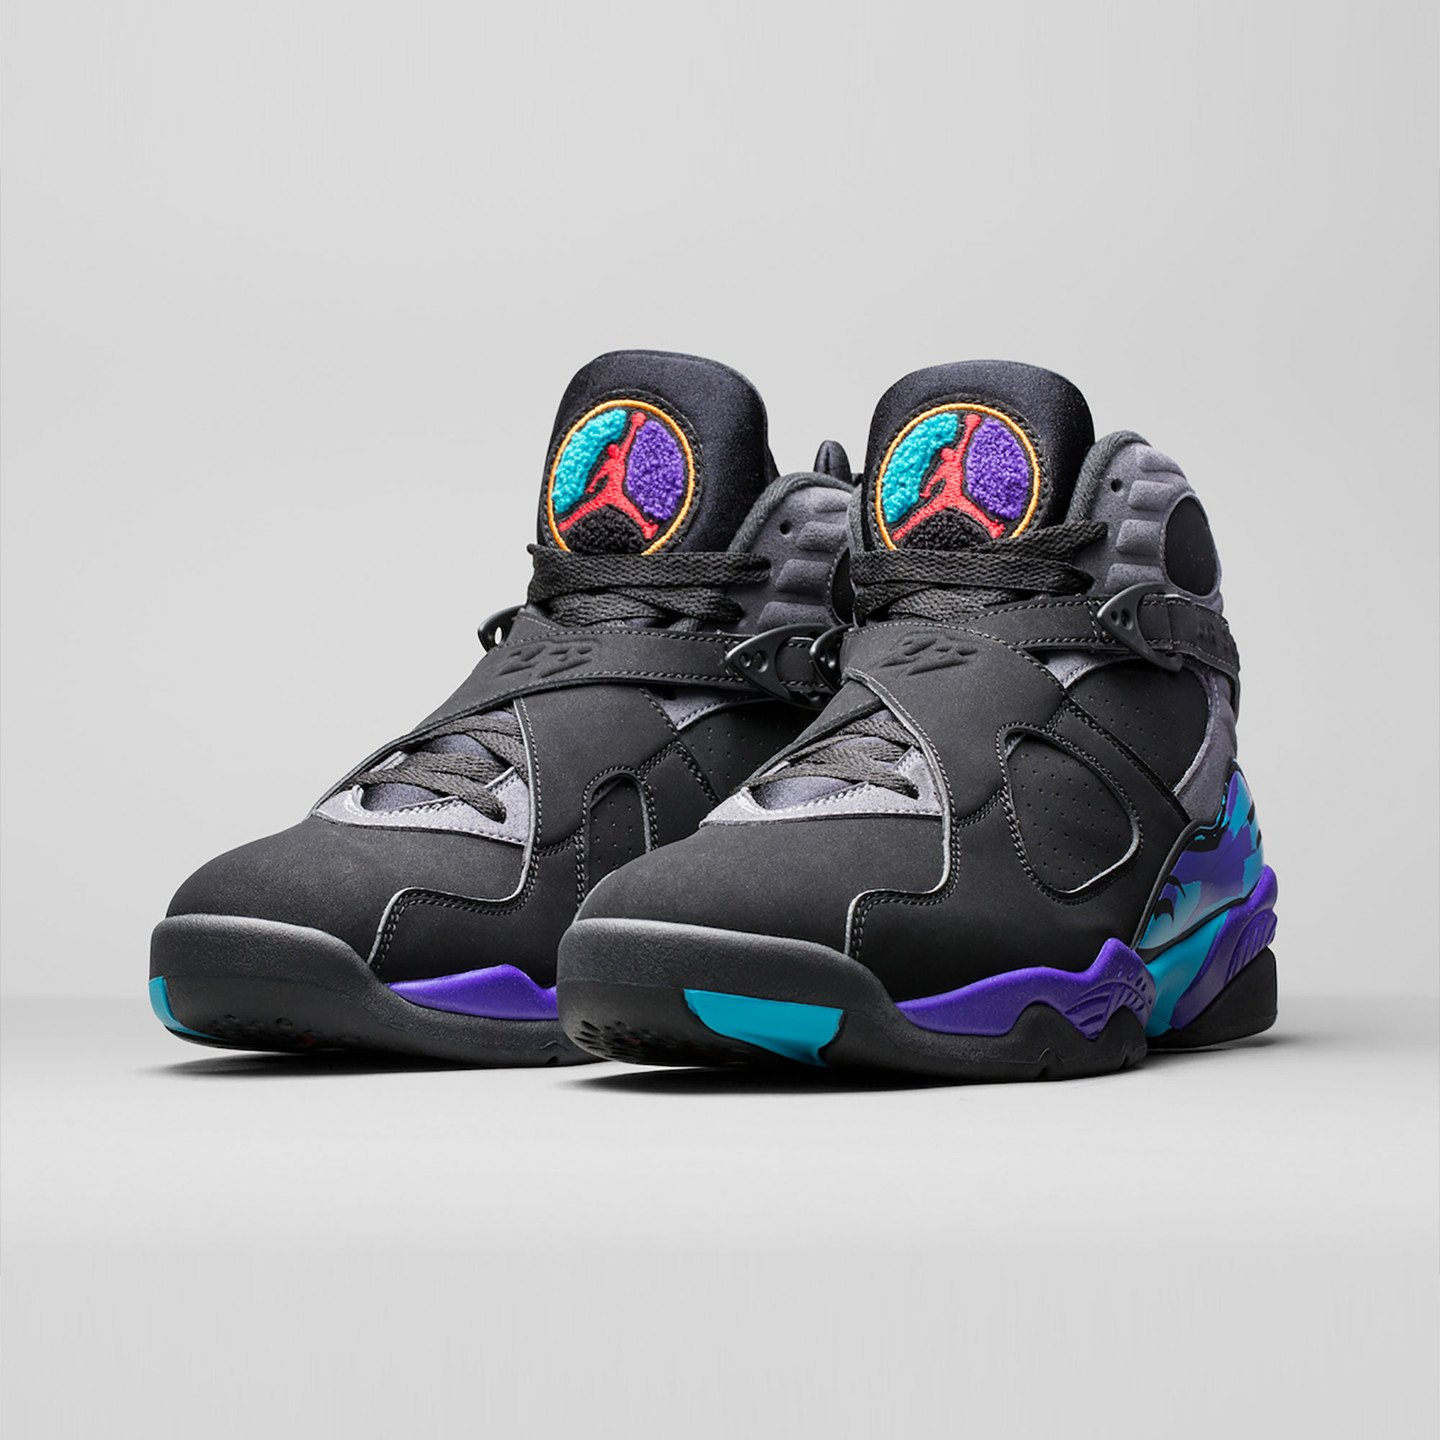 Jordan Air Jordan Retro 8 'Aqua' Black/True Red-Flint Grey-Bright Concord 305381-025-44.5